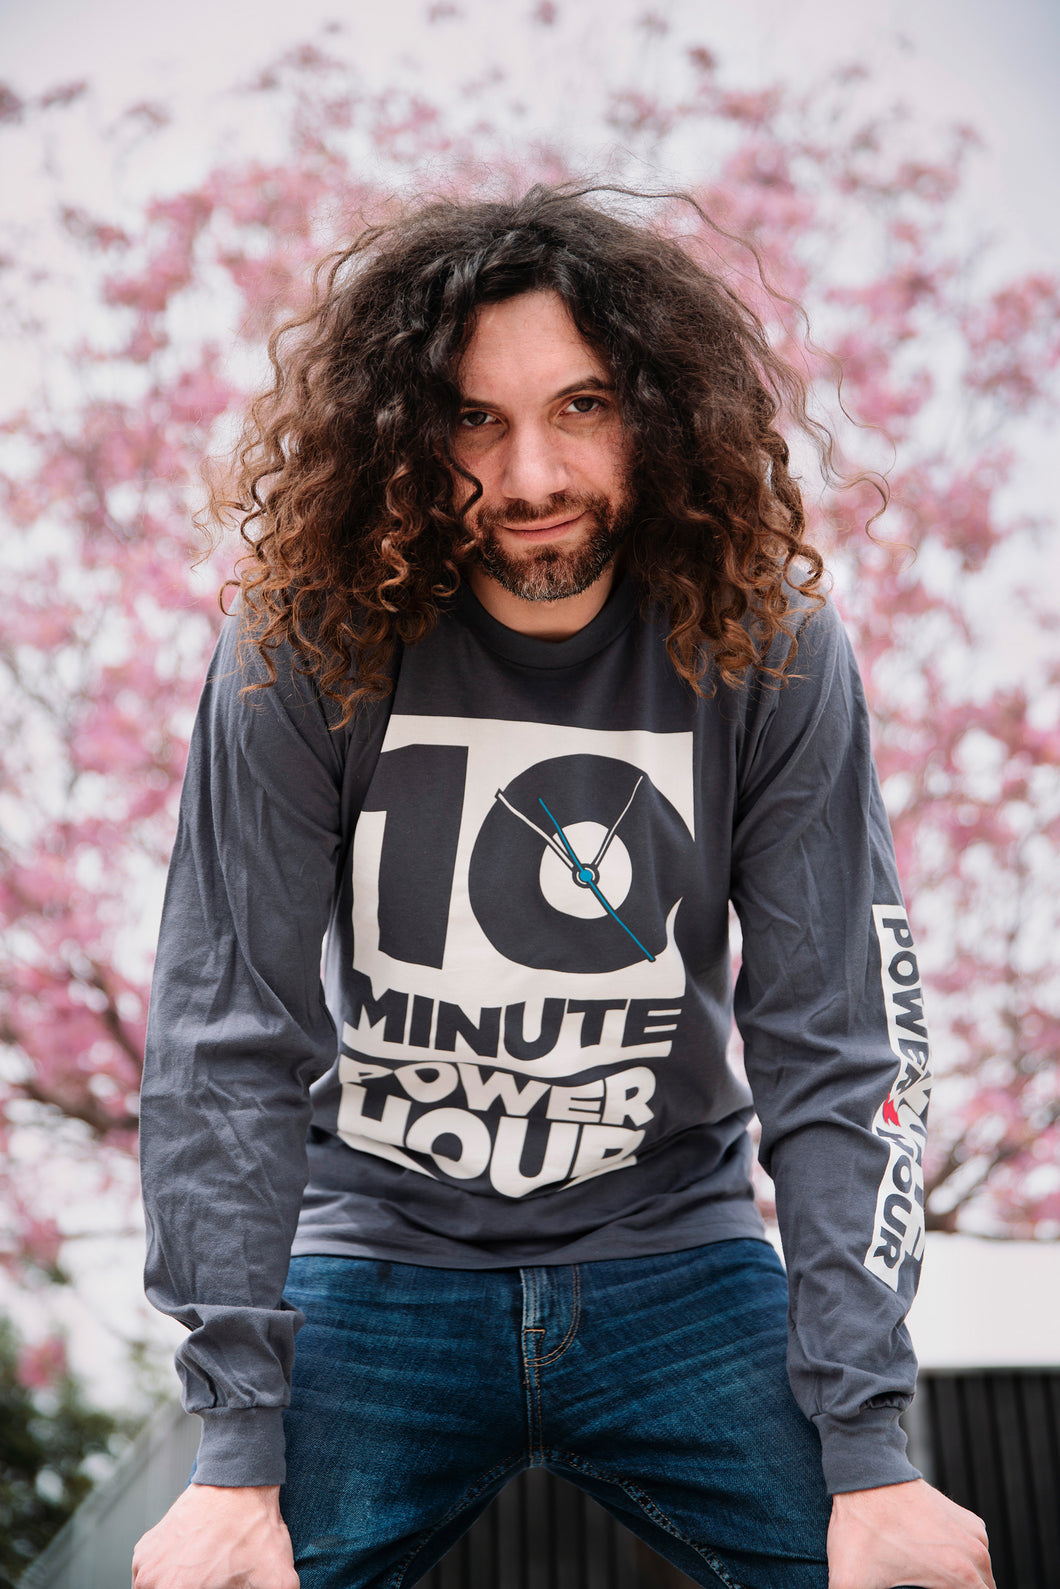 The Ten Minute Power Hour Long Sleeve Tee - Grey Variant